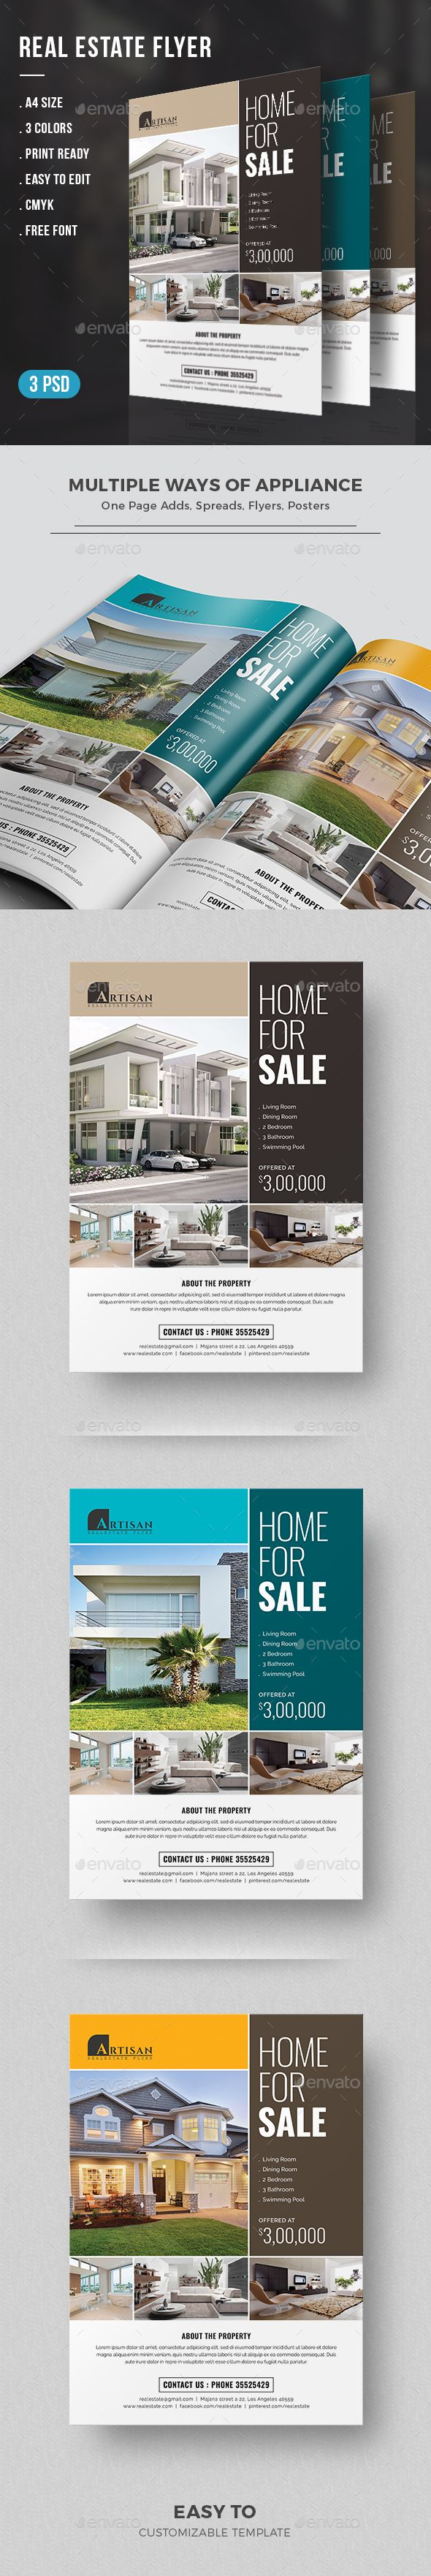 Open House Flyer Template] School Open House Flyer Template, Homcom ...